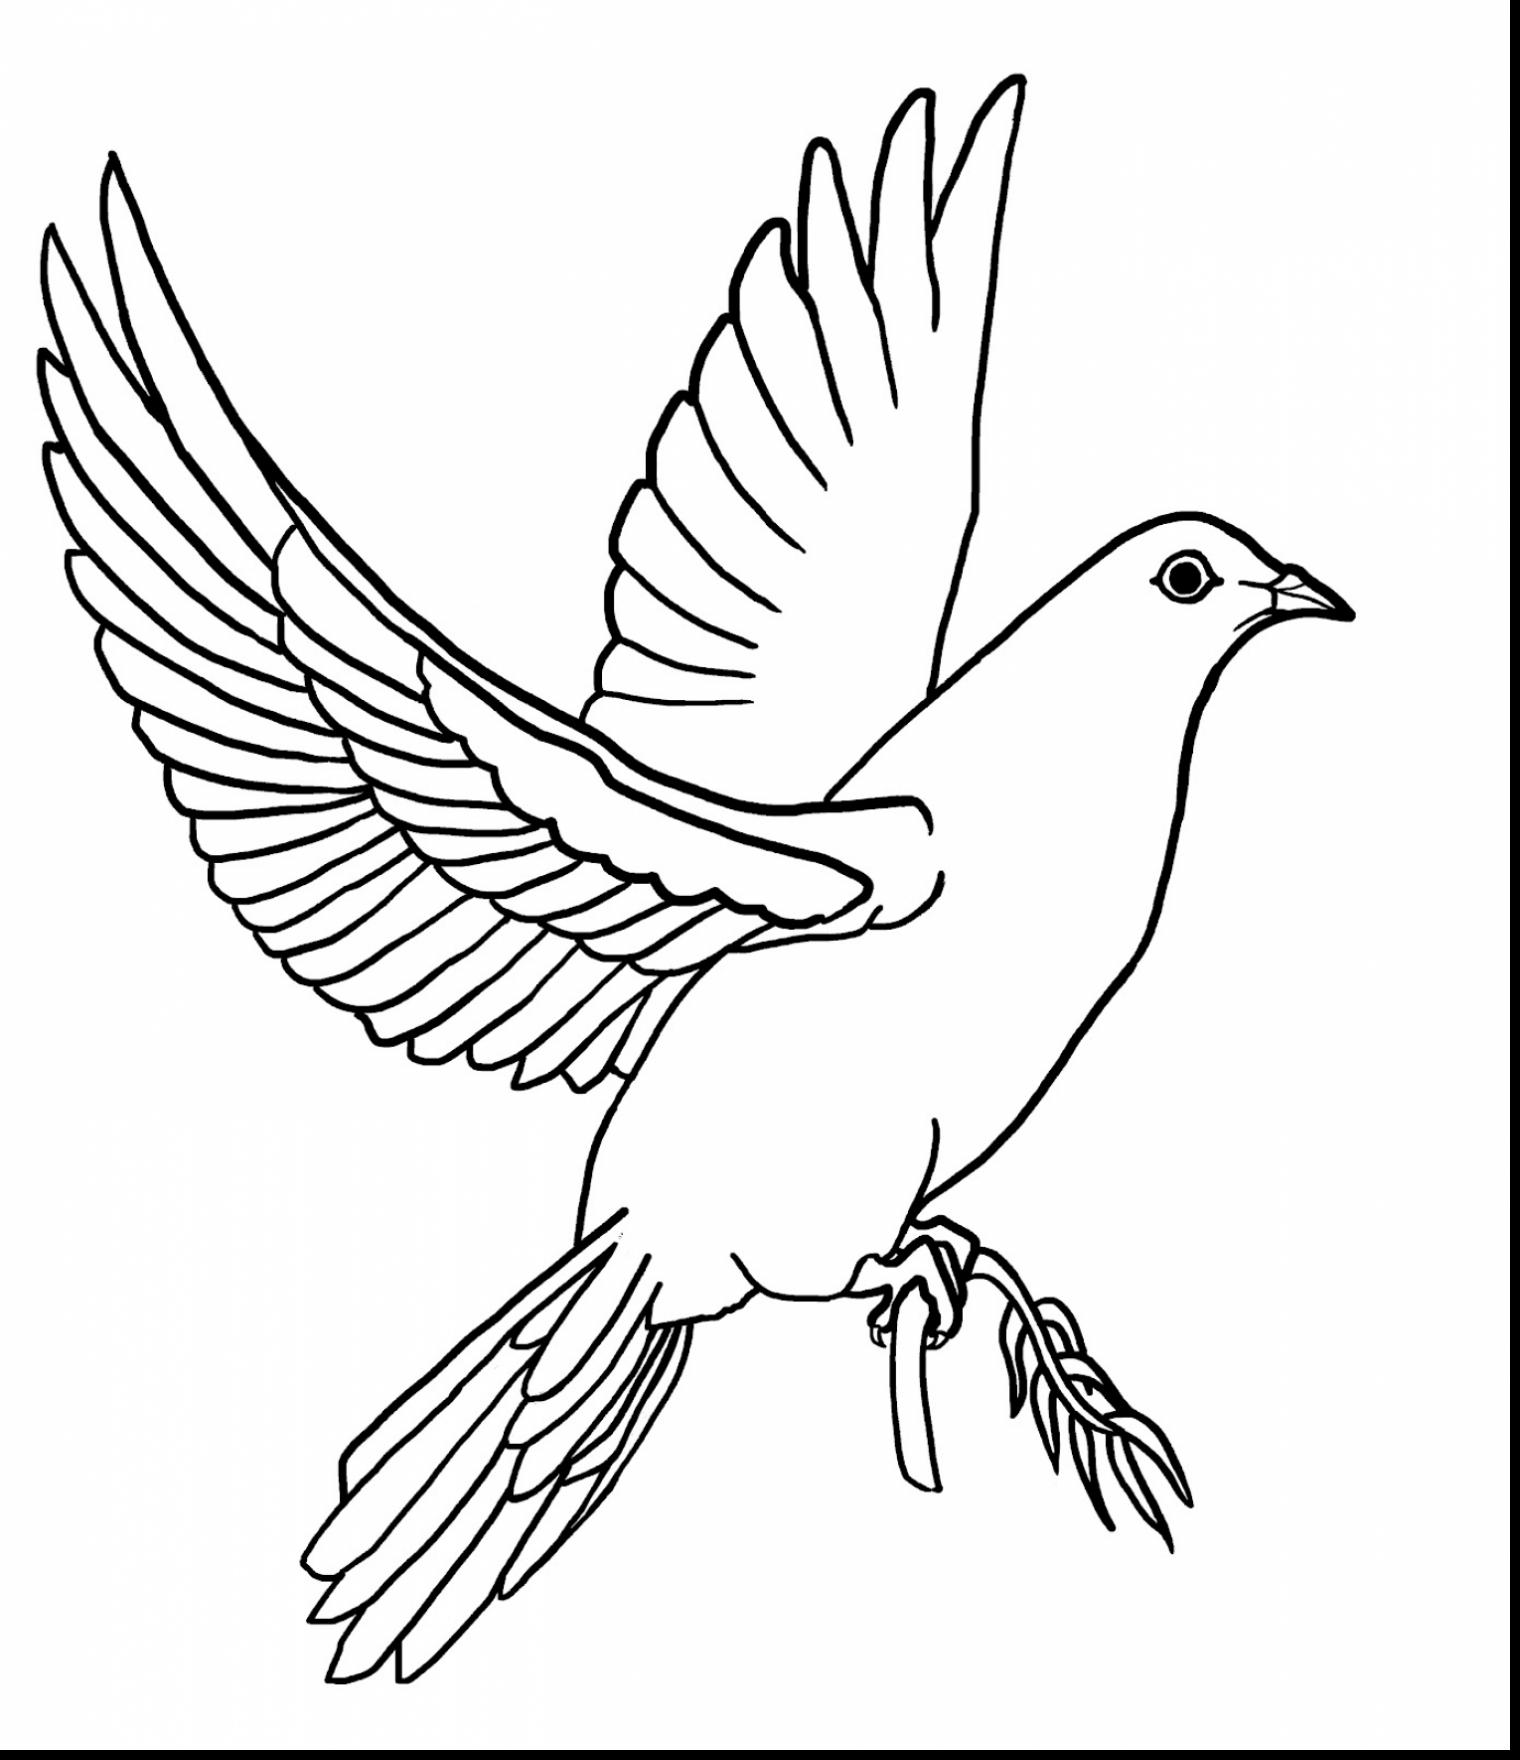 doves coloring pages turtle doves coloring pages coloring home coloring pages doves